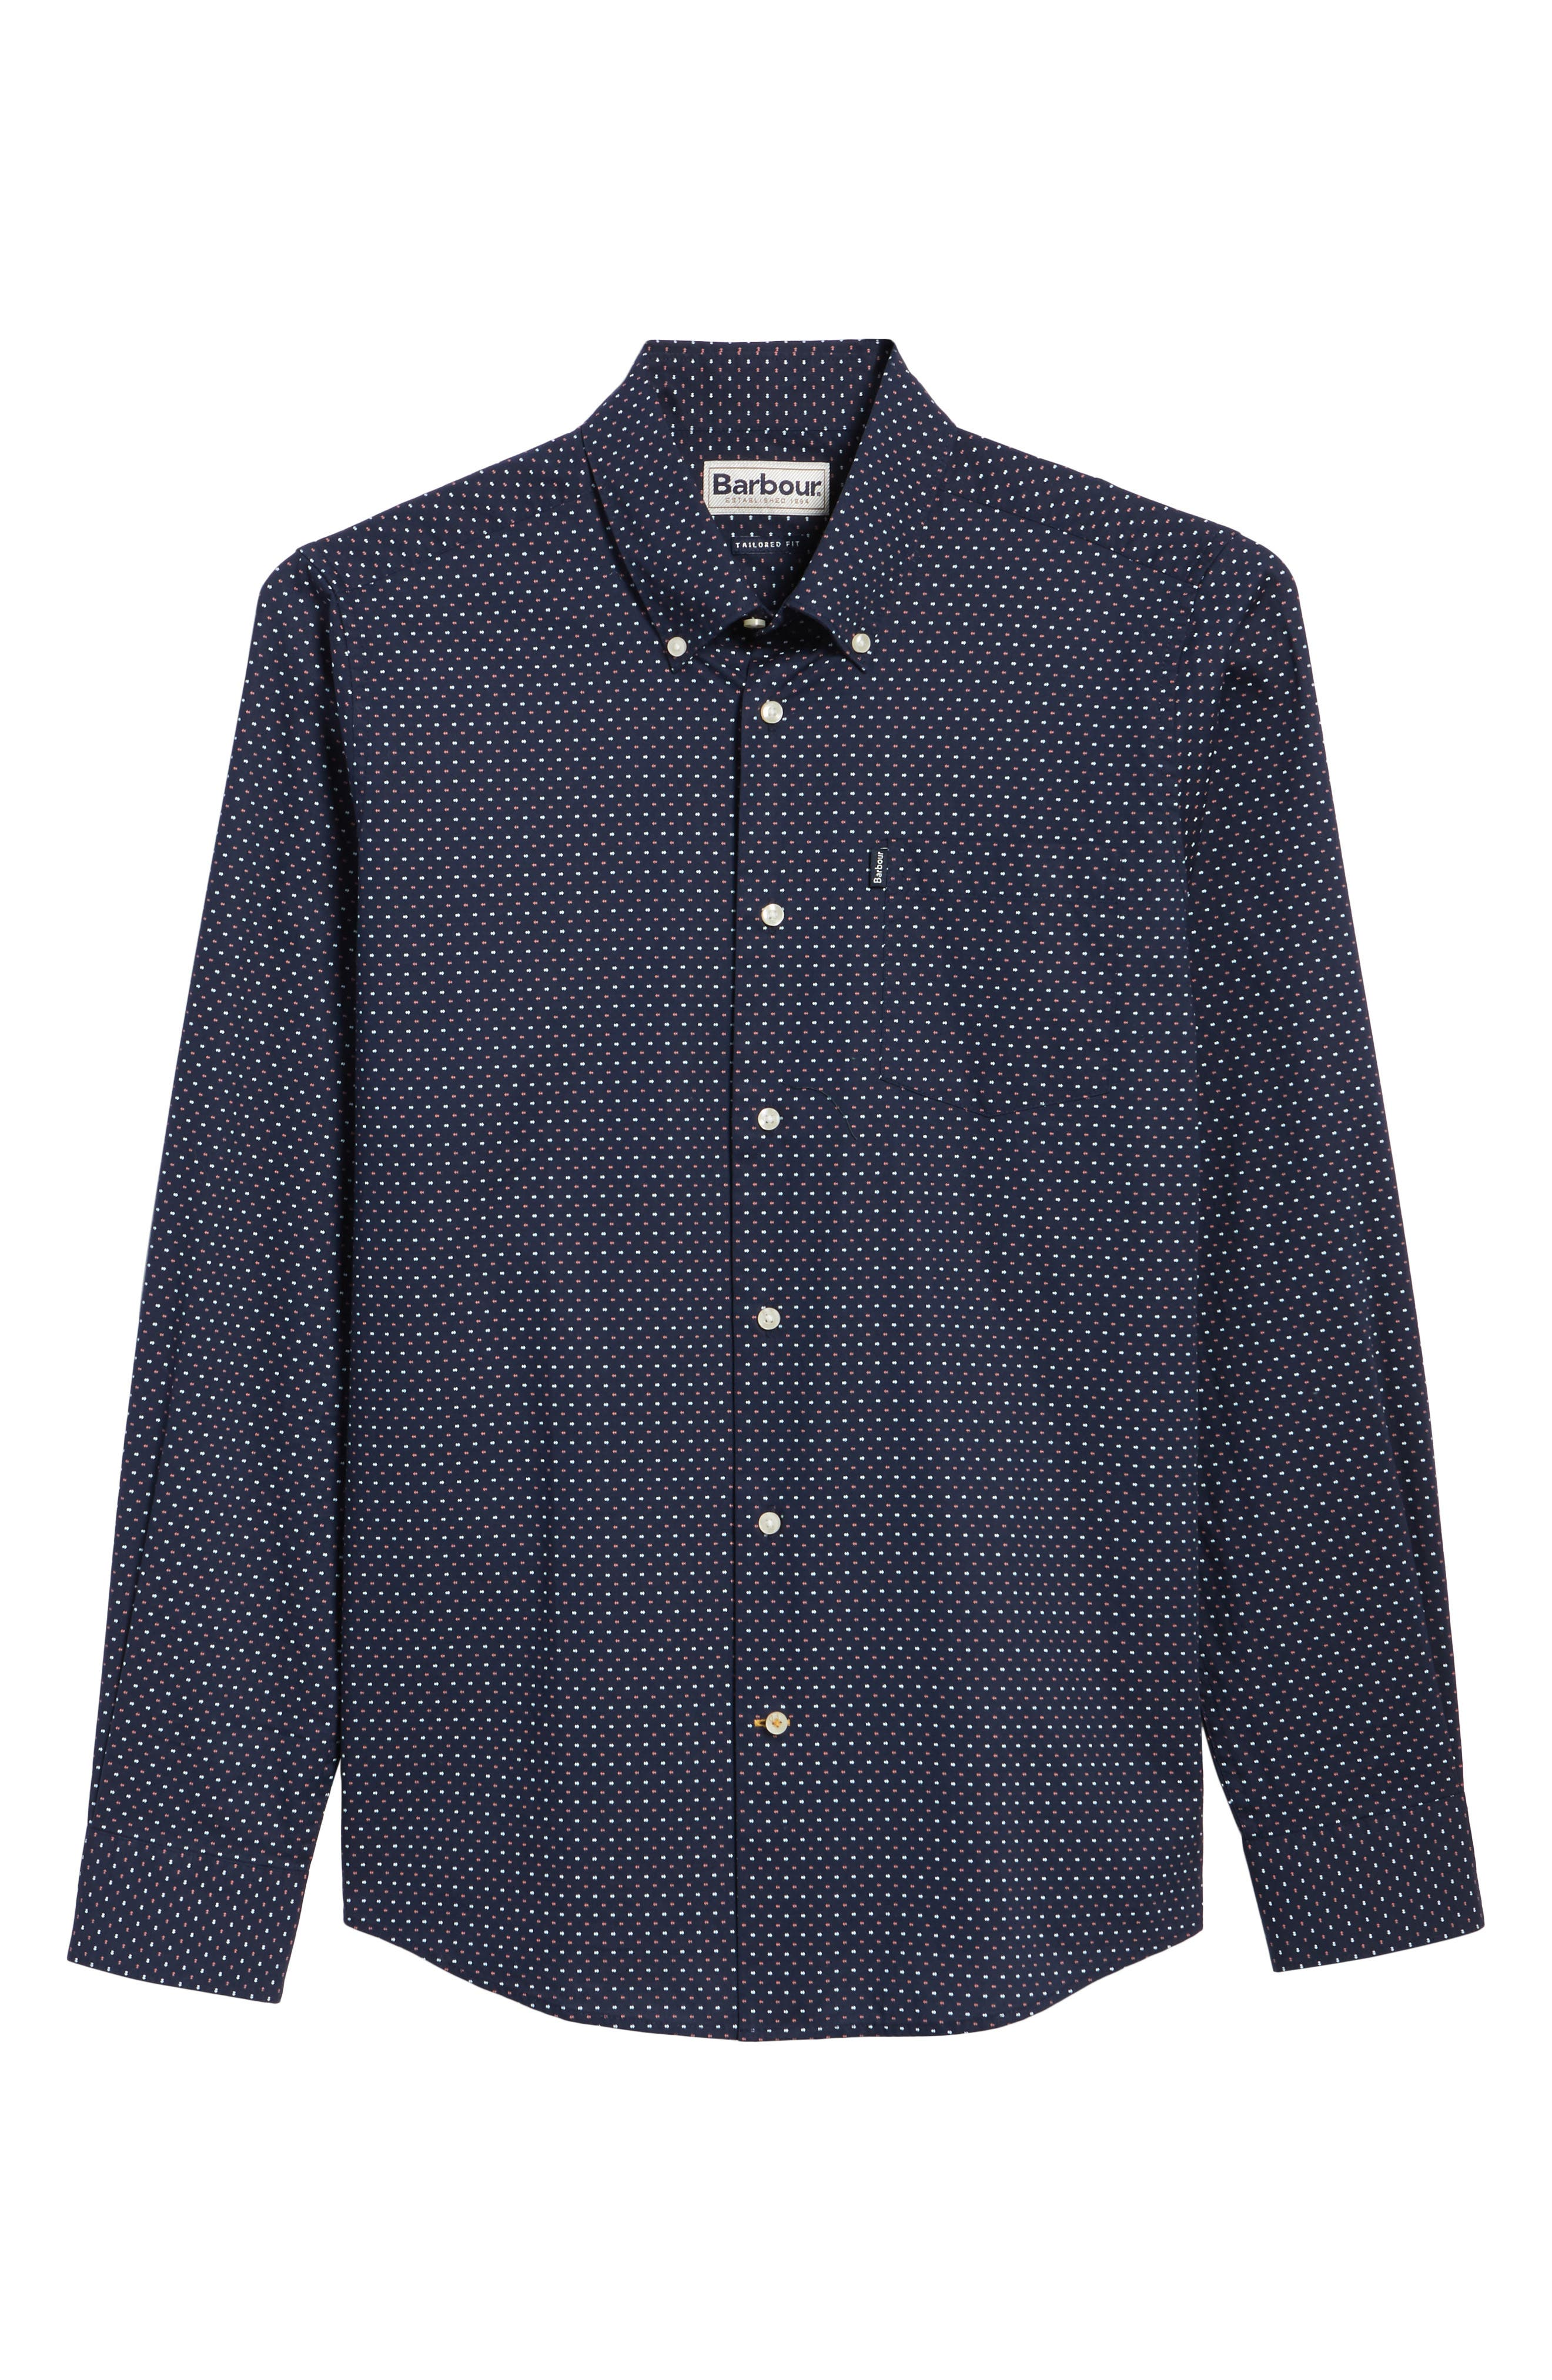 Cullen Trim Fit Print Sport Shirt,                             Alternate thumbnail 6, color,                             Navy